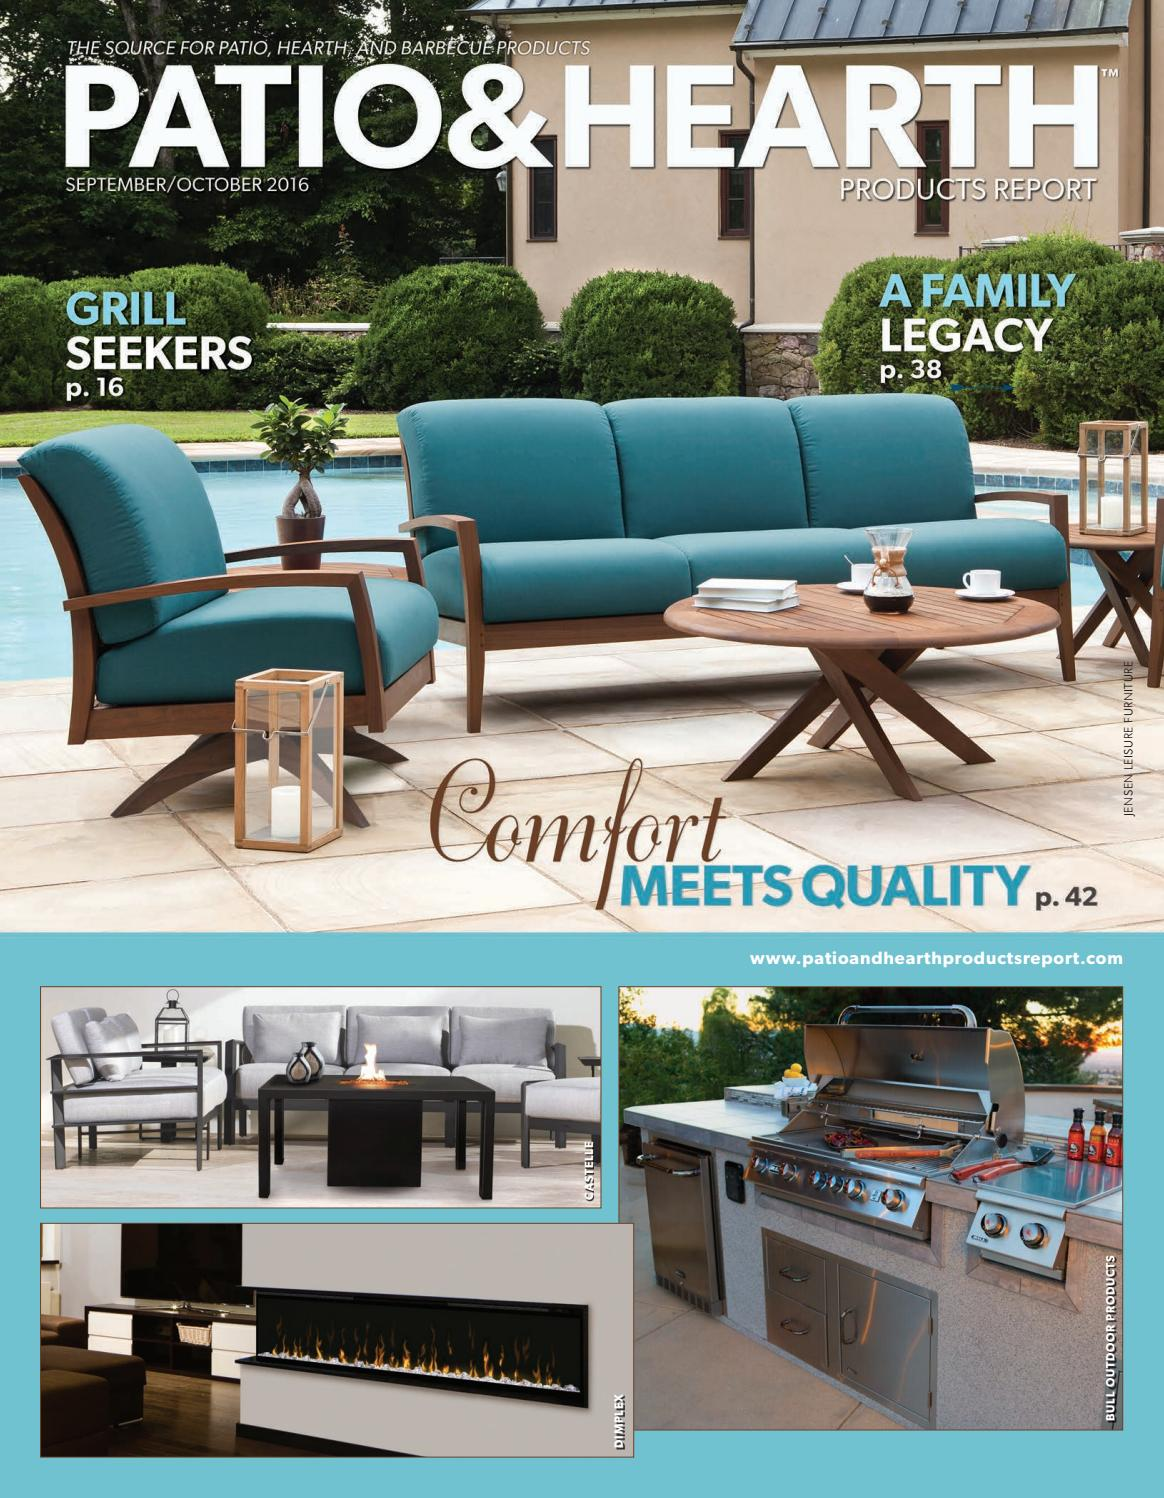 Outdoor Küche Broil King Patio Hearth Products Report September October 2016